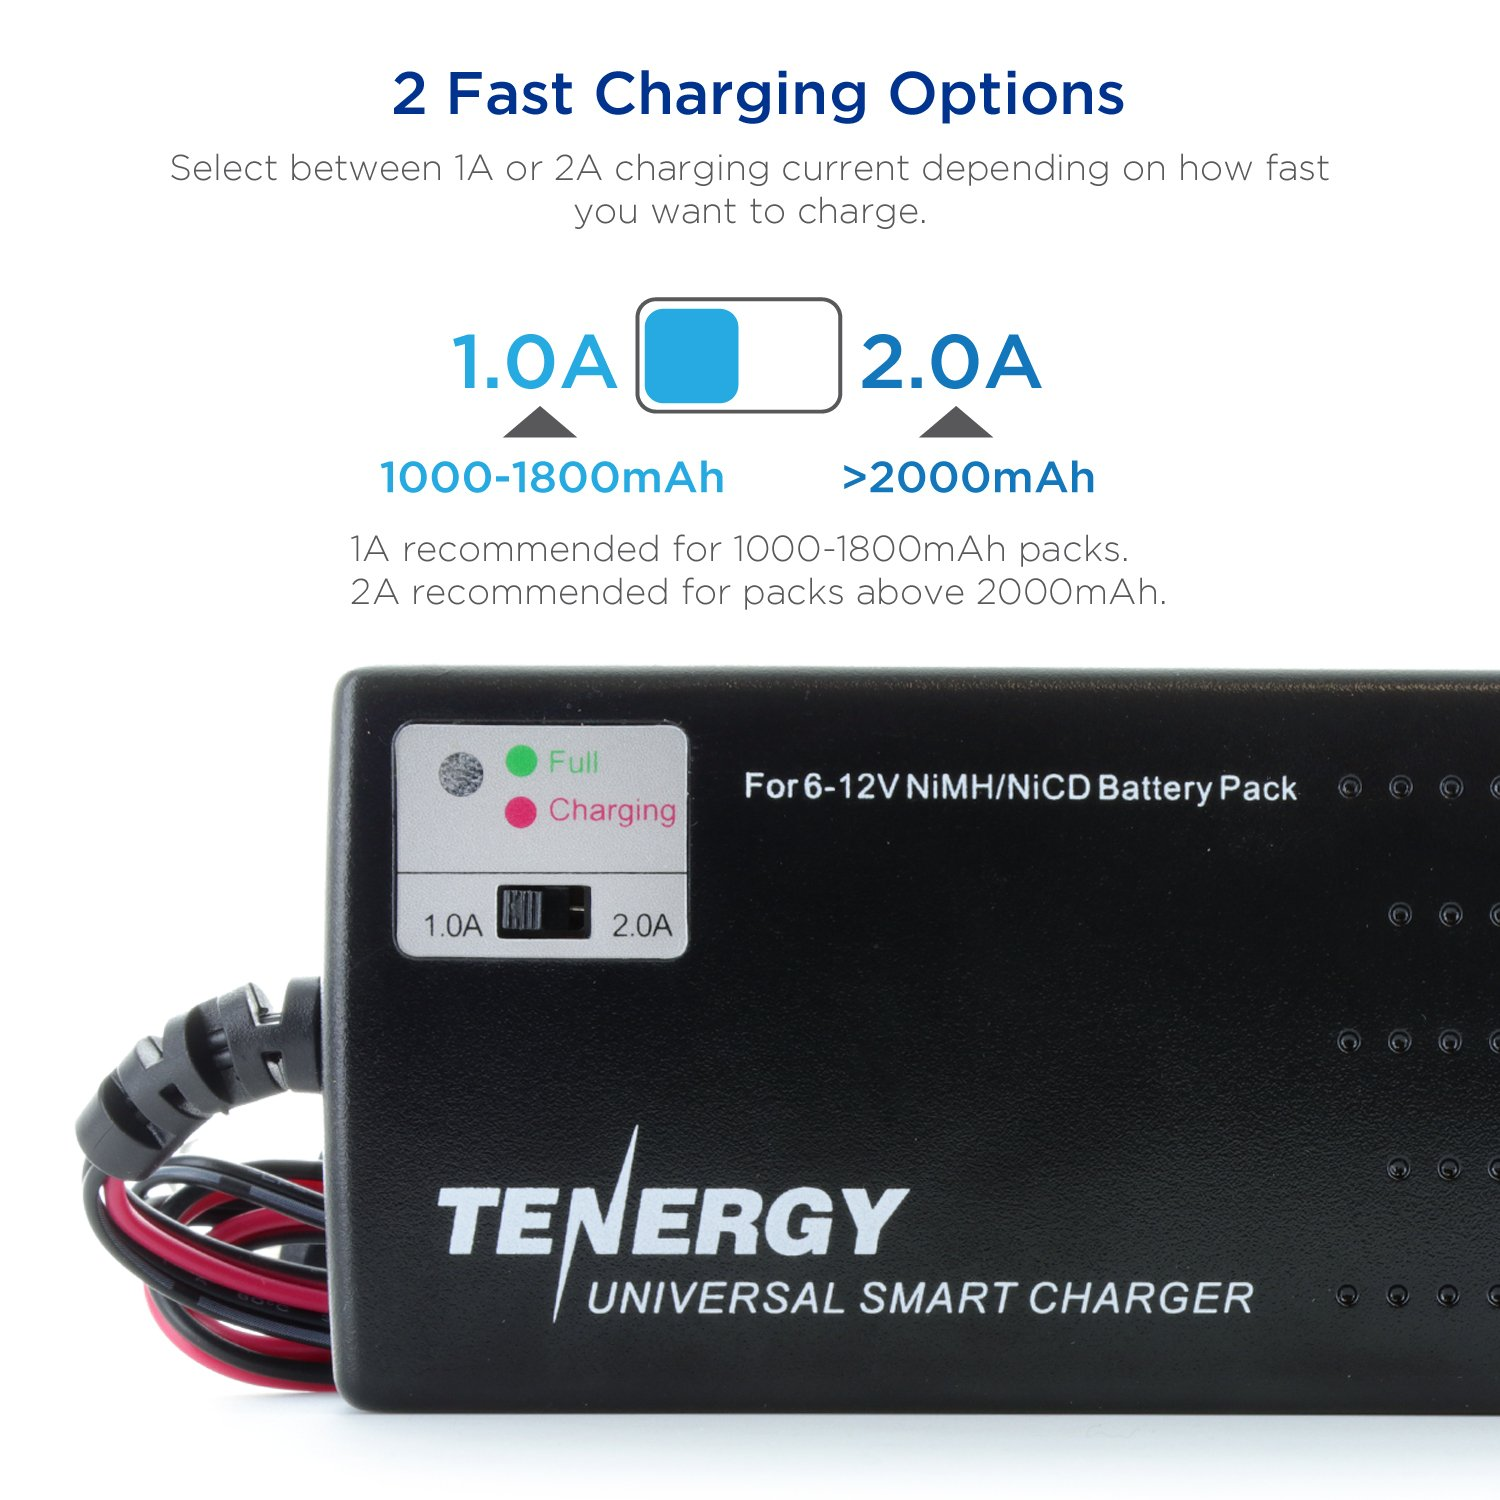 Tenergy Universal Rc Battery Charger For Nimh Nicd 6v Simple Electronic Circuits 12v Packs Fast Car Airsoft Batteries Compatible With Standard